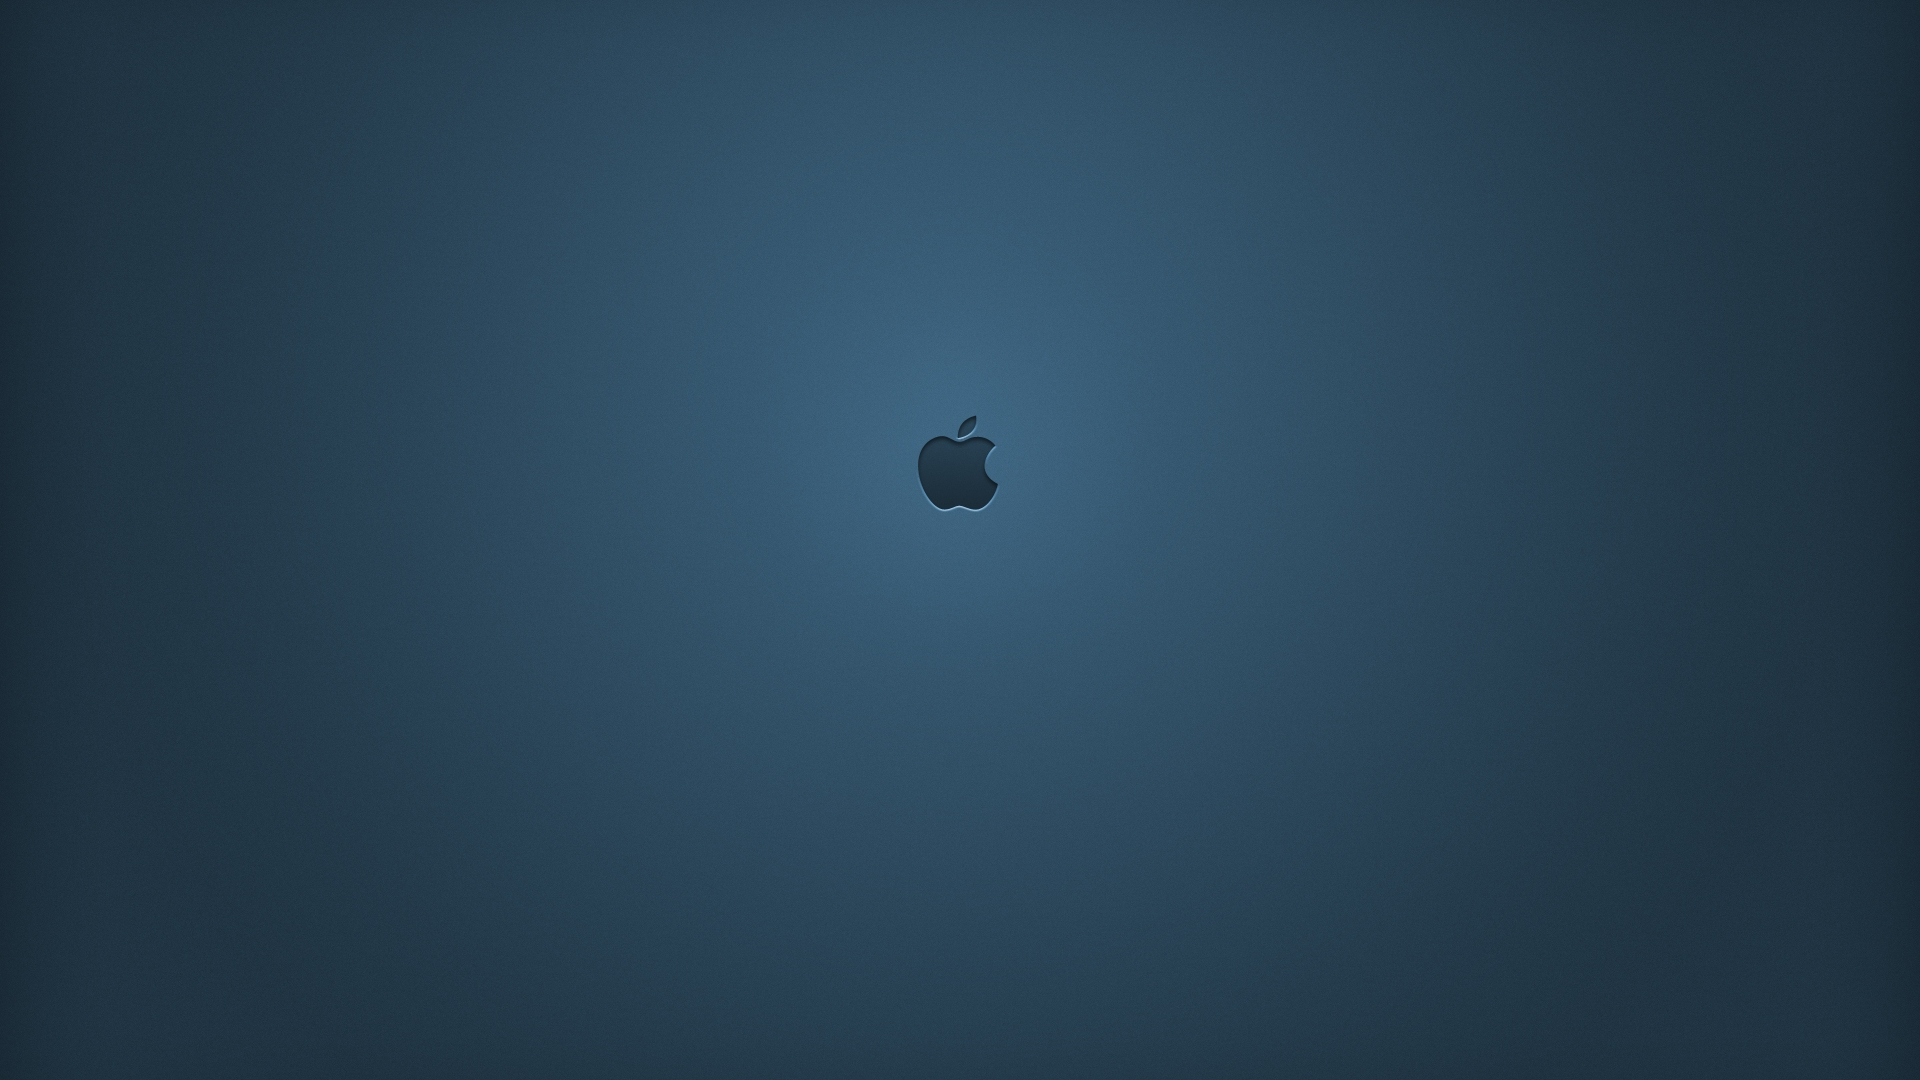 Minimal Apple Wallpaper